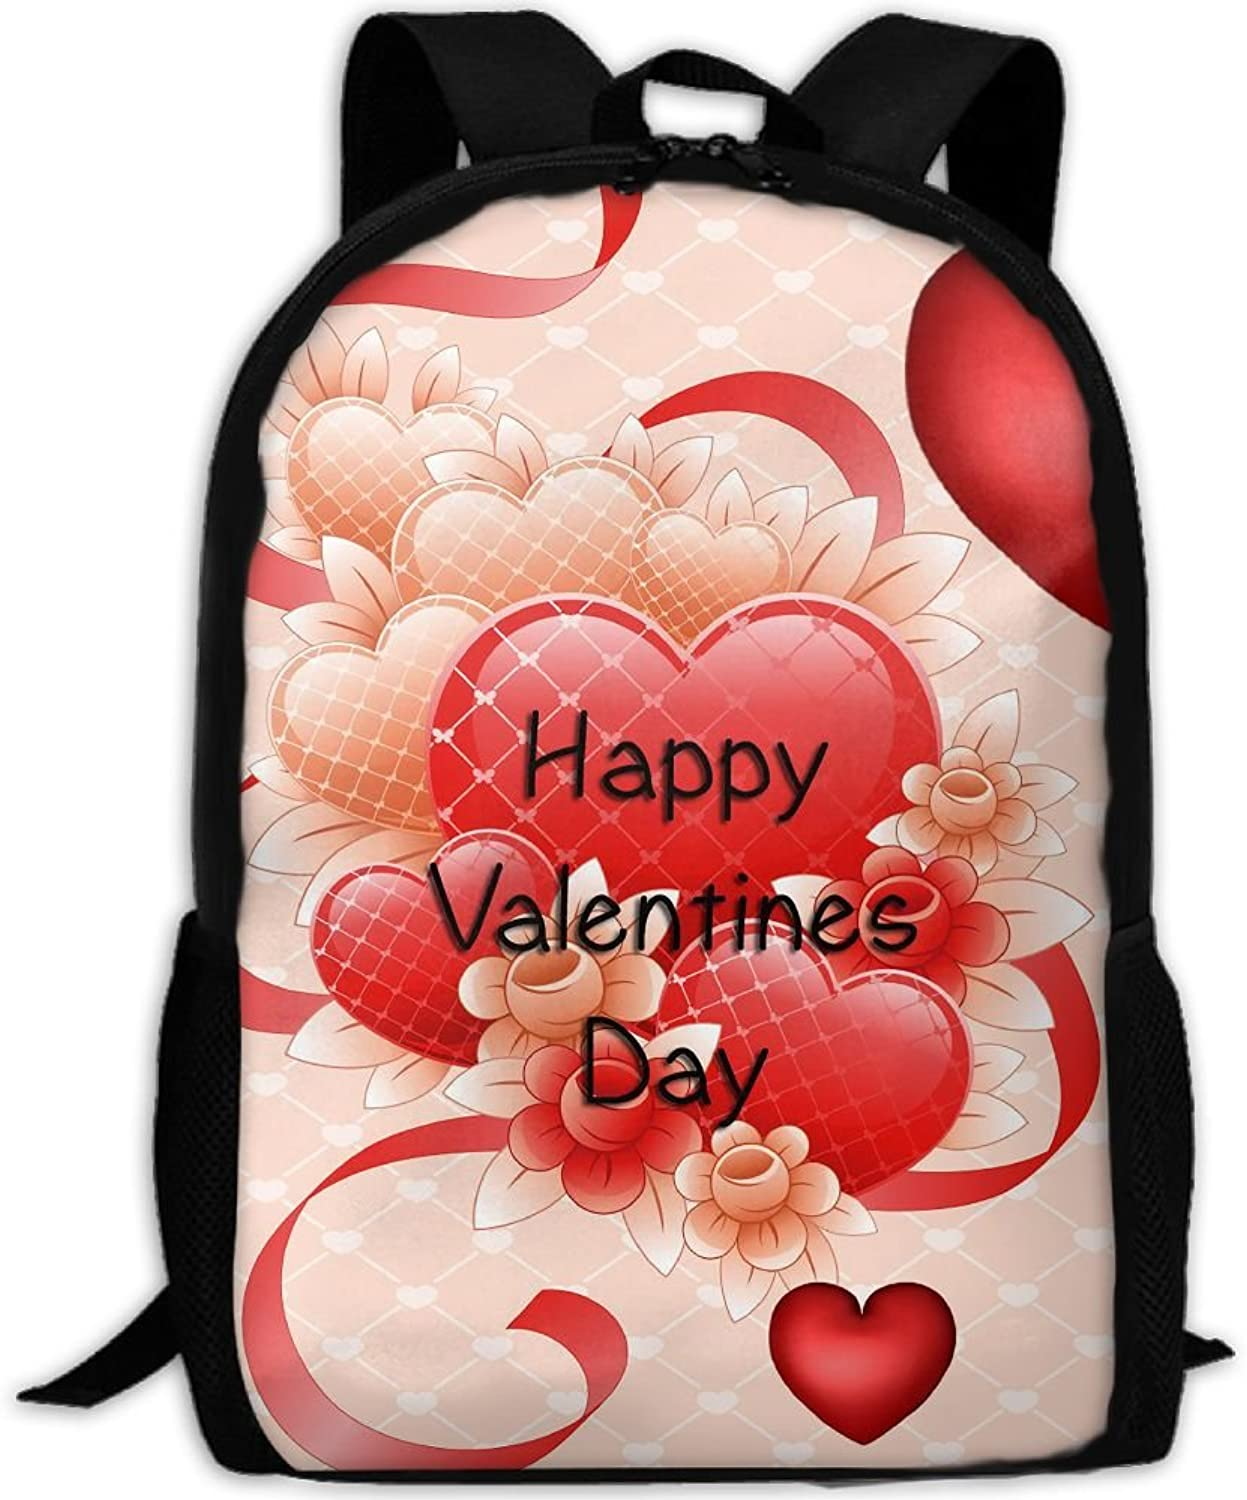 Red Hearts Happy Valentine's Day Adult Backpack College Daypack Oxford Bag Unisex Business Travel Sports Bag